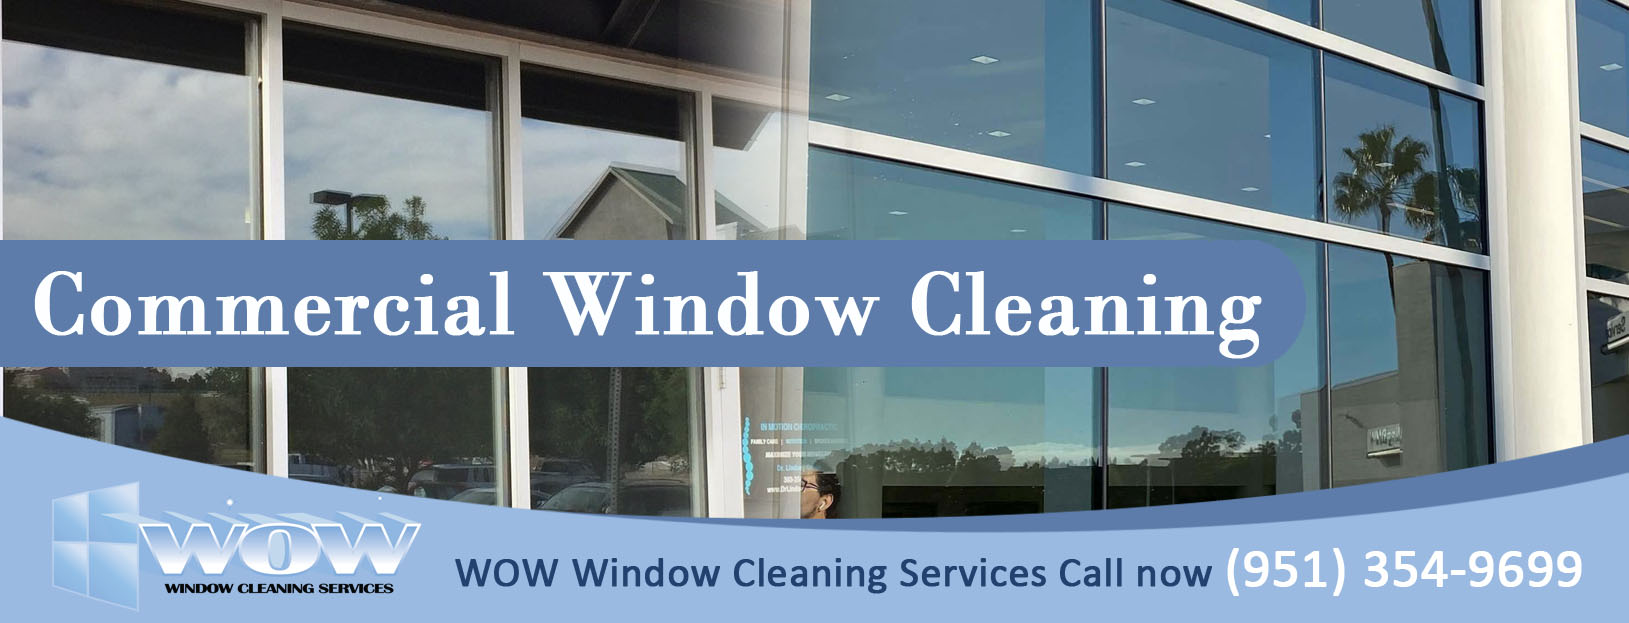 Moreno Valley Riverside Windown Cleaning, house pressure wash, shutters 2